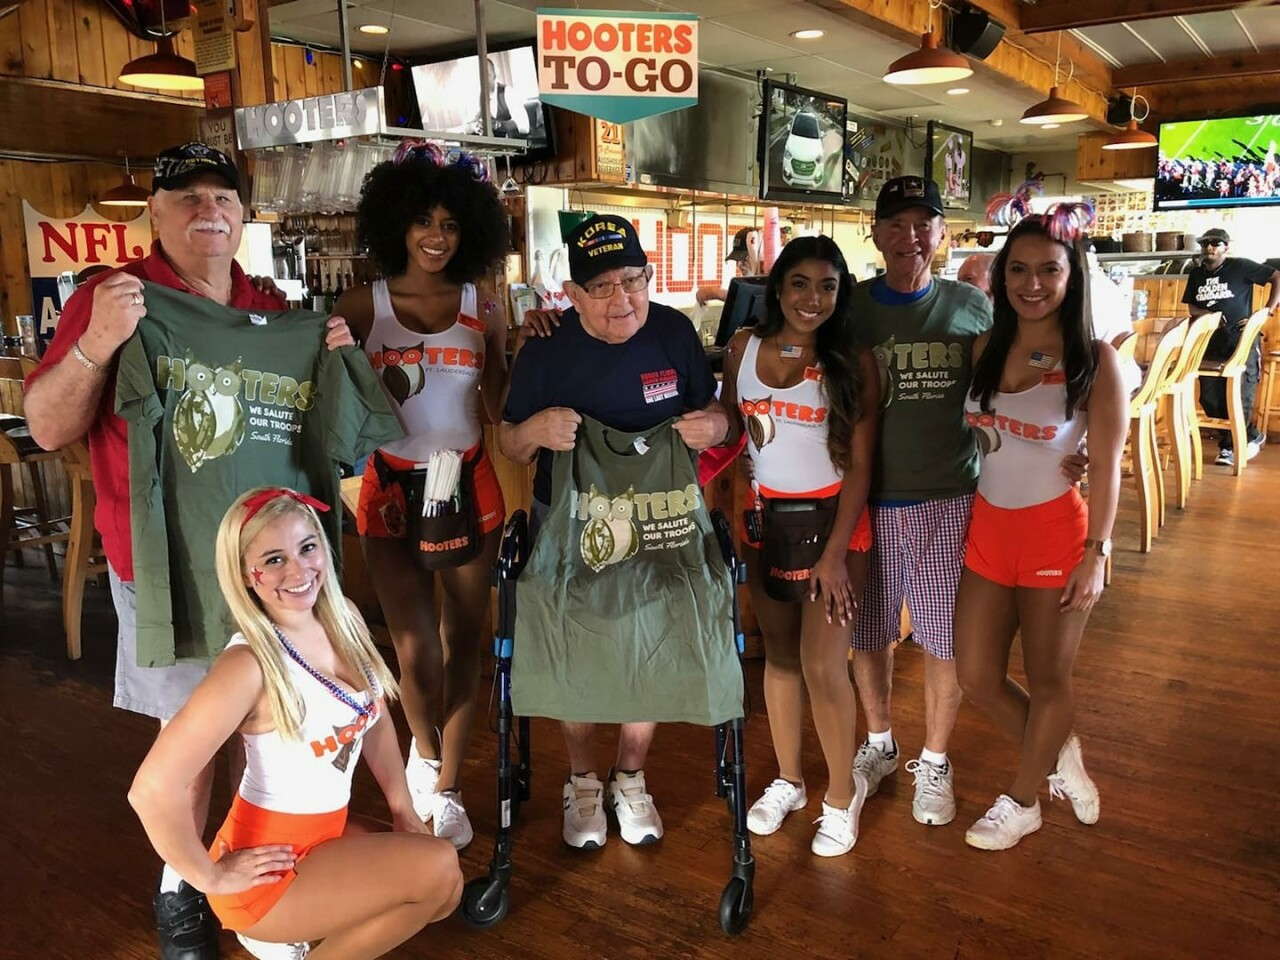 Hooters girls with veterans holding 'We Salute Our Troops' shirts